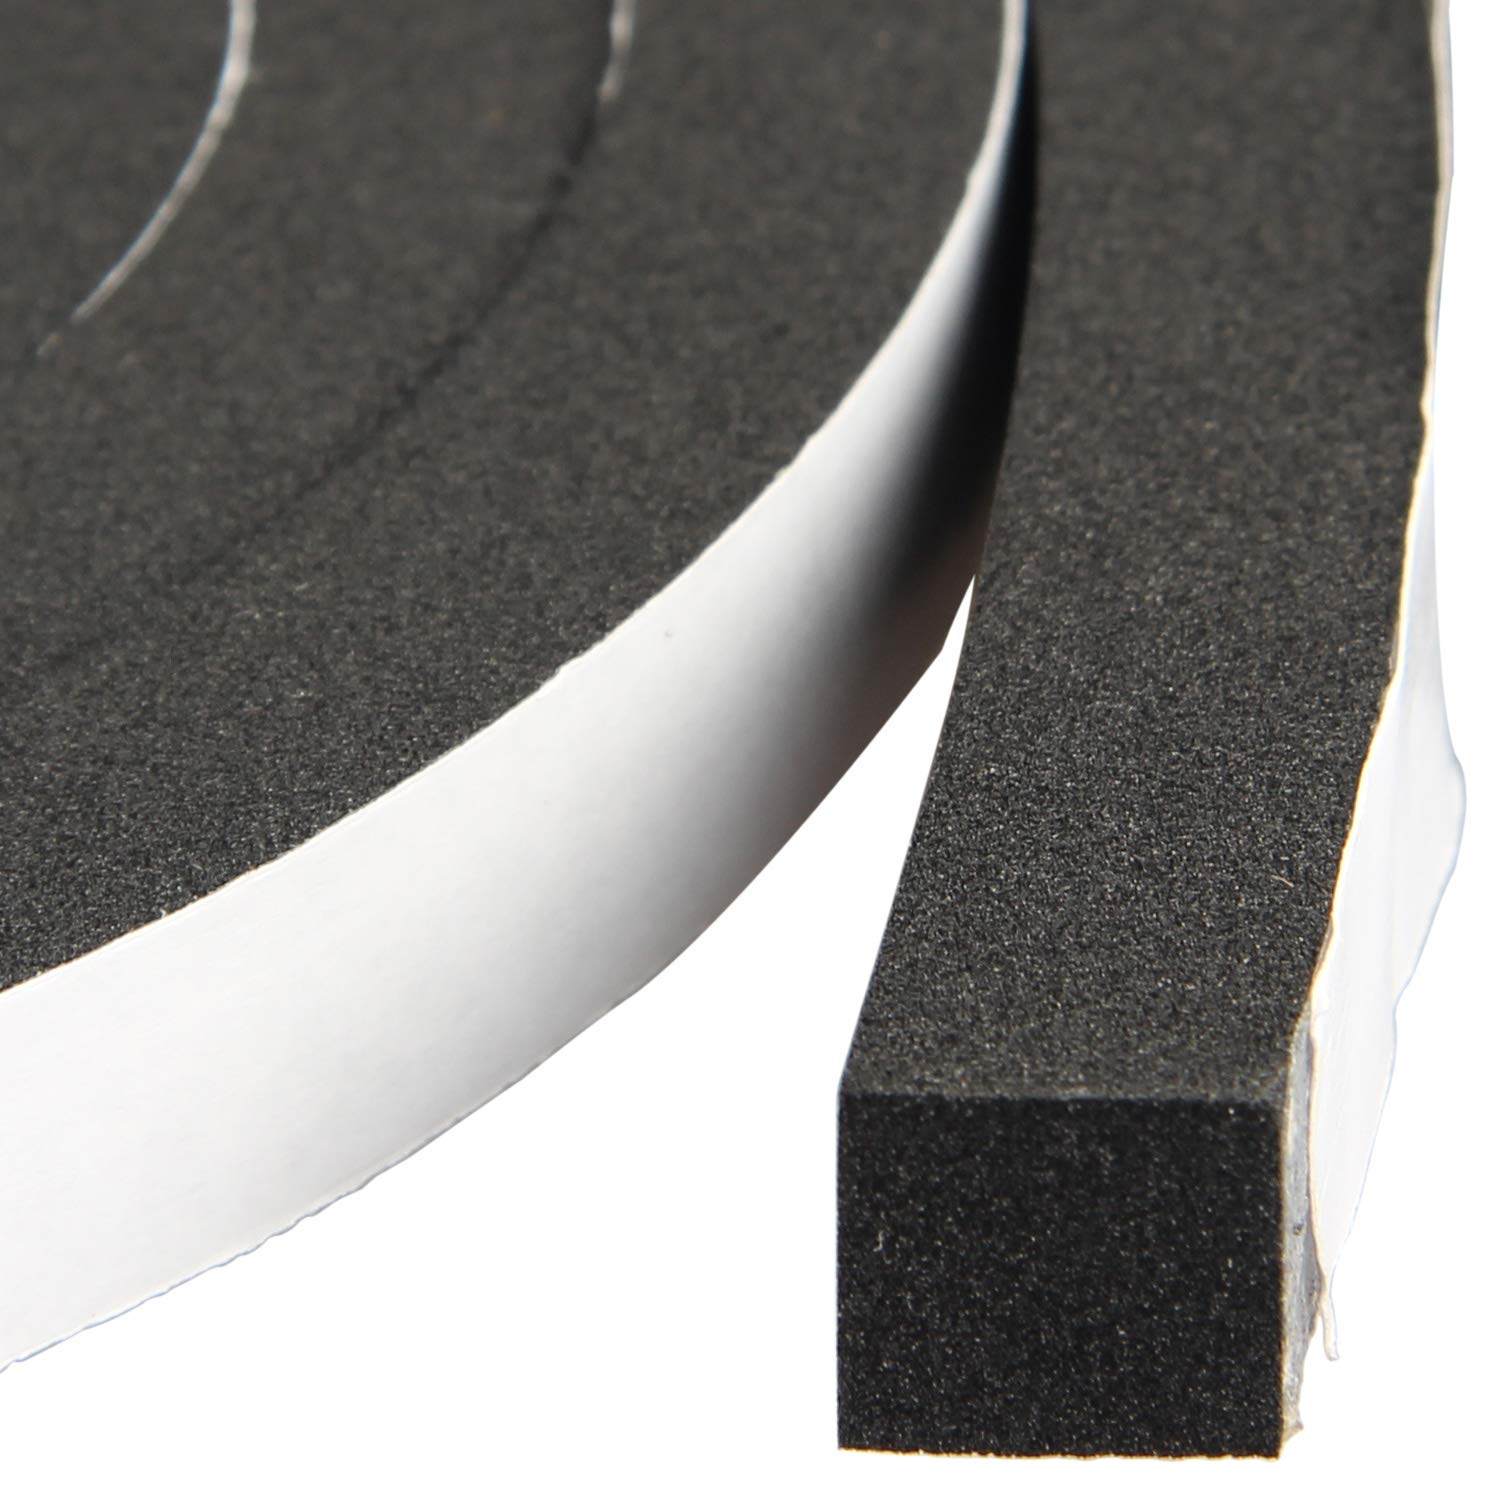 Weather Stripping Closed Cell Foam Insulation Tape Rubber Seal Strip Window Insulation 1/2 Inch Wide X 1/2 Inch Thick X 13 Feet Long (2 Rolls of 6.5 Ft Long Each)